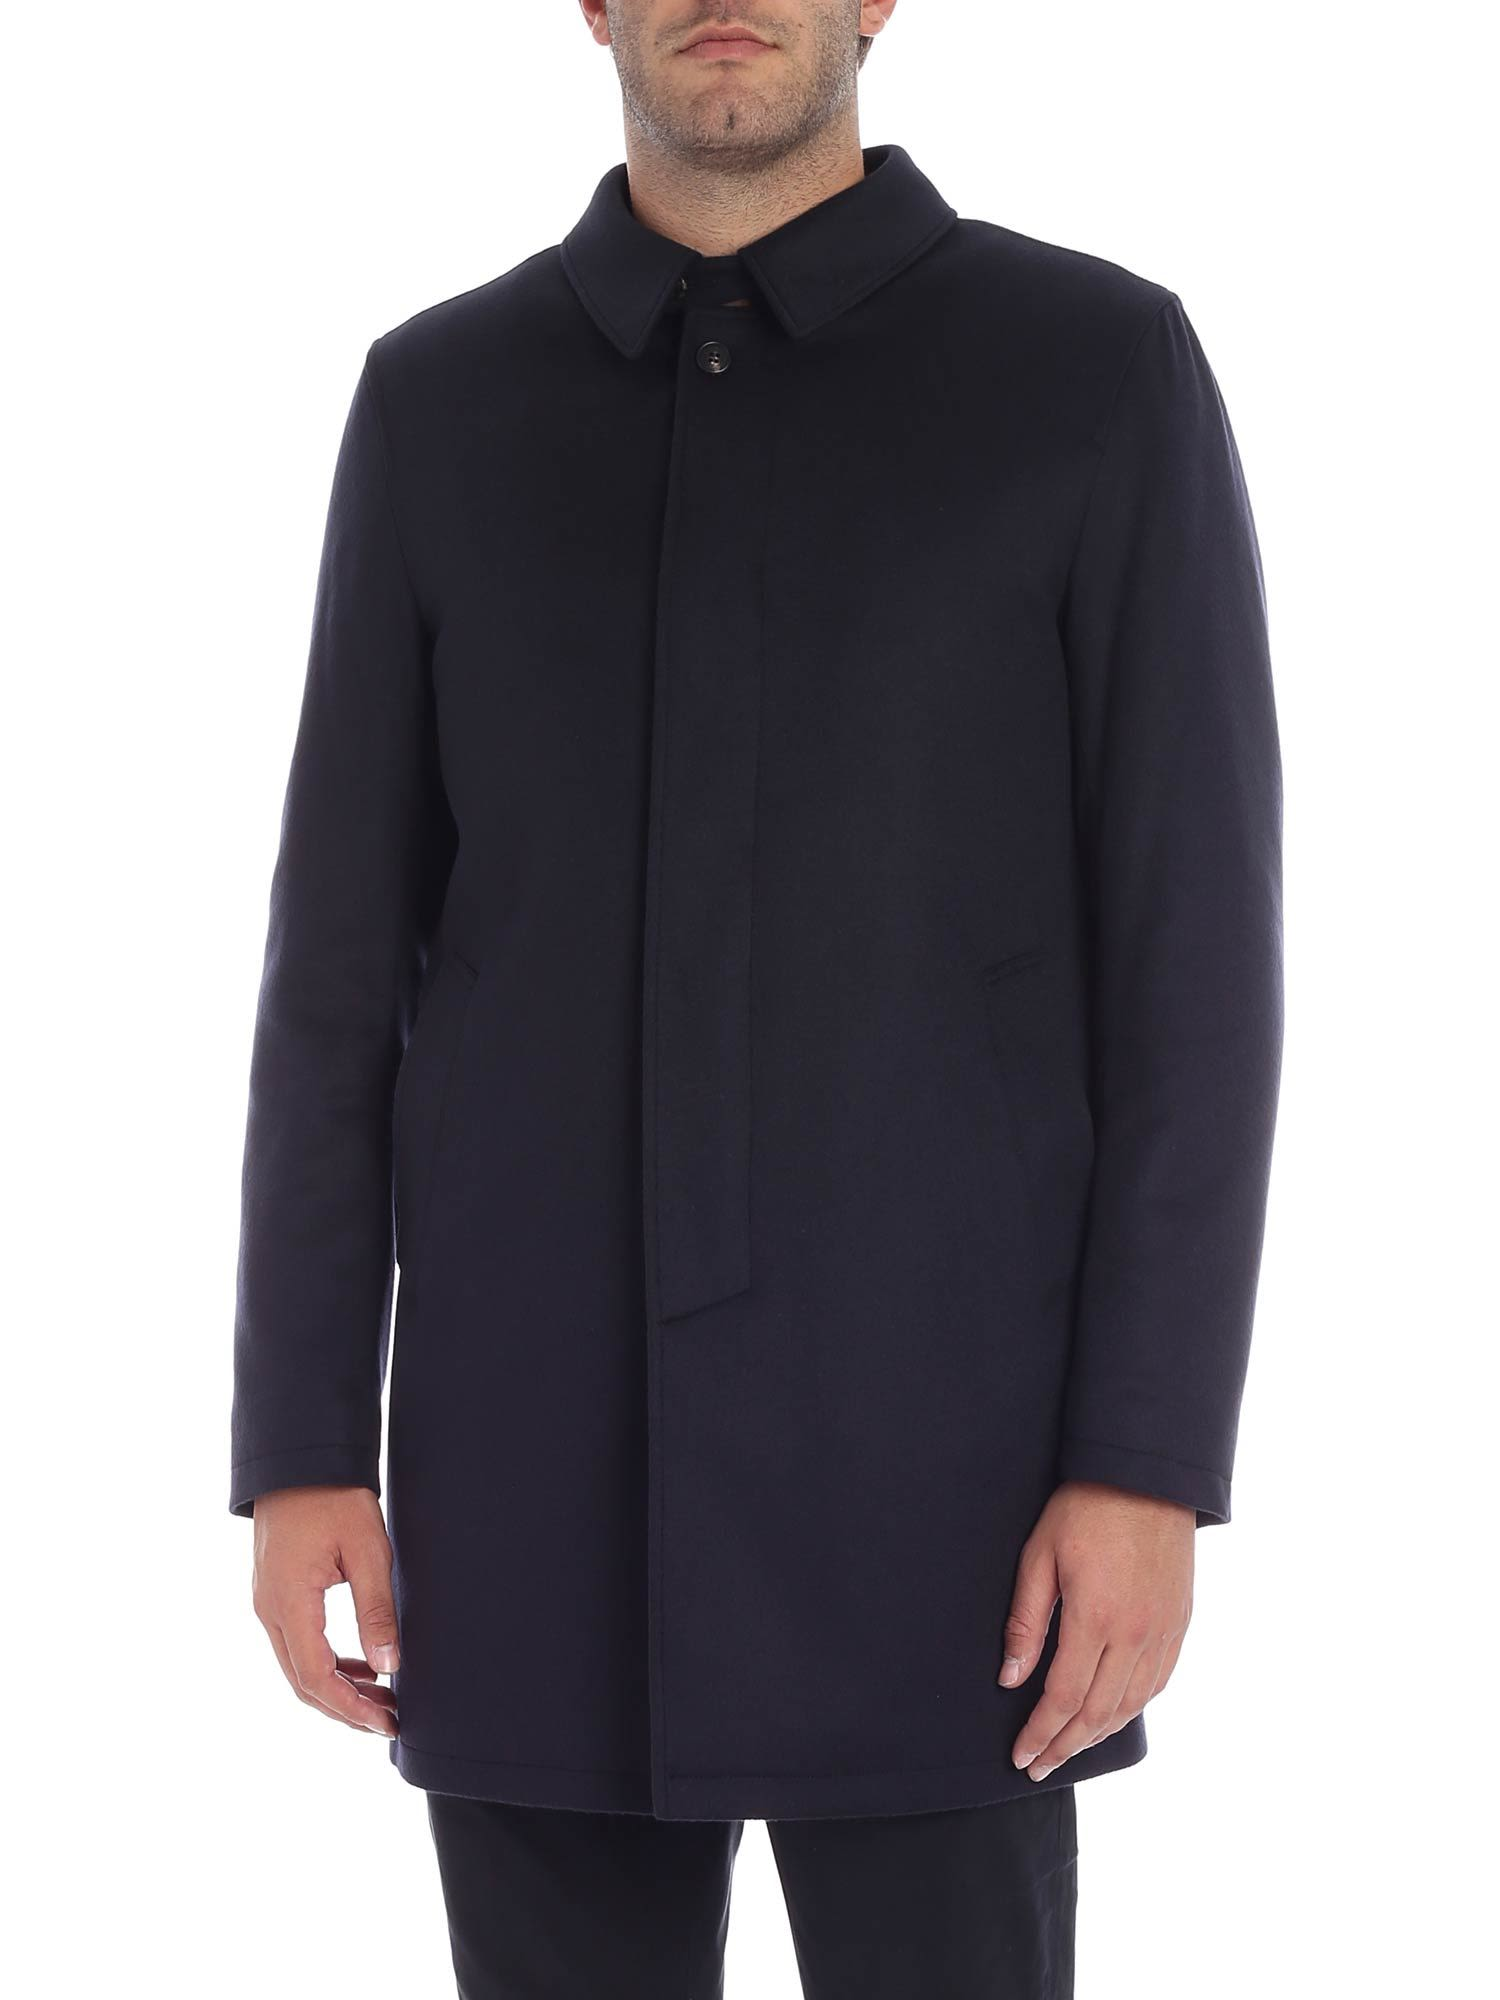 LUIGI BORRELLI Concealed Fastening Coat in Blue